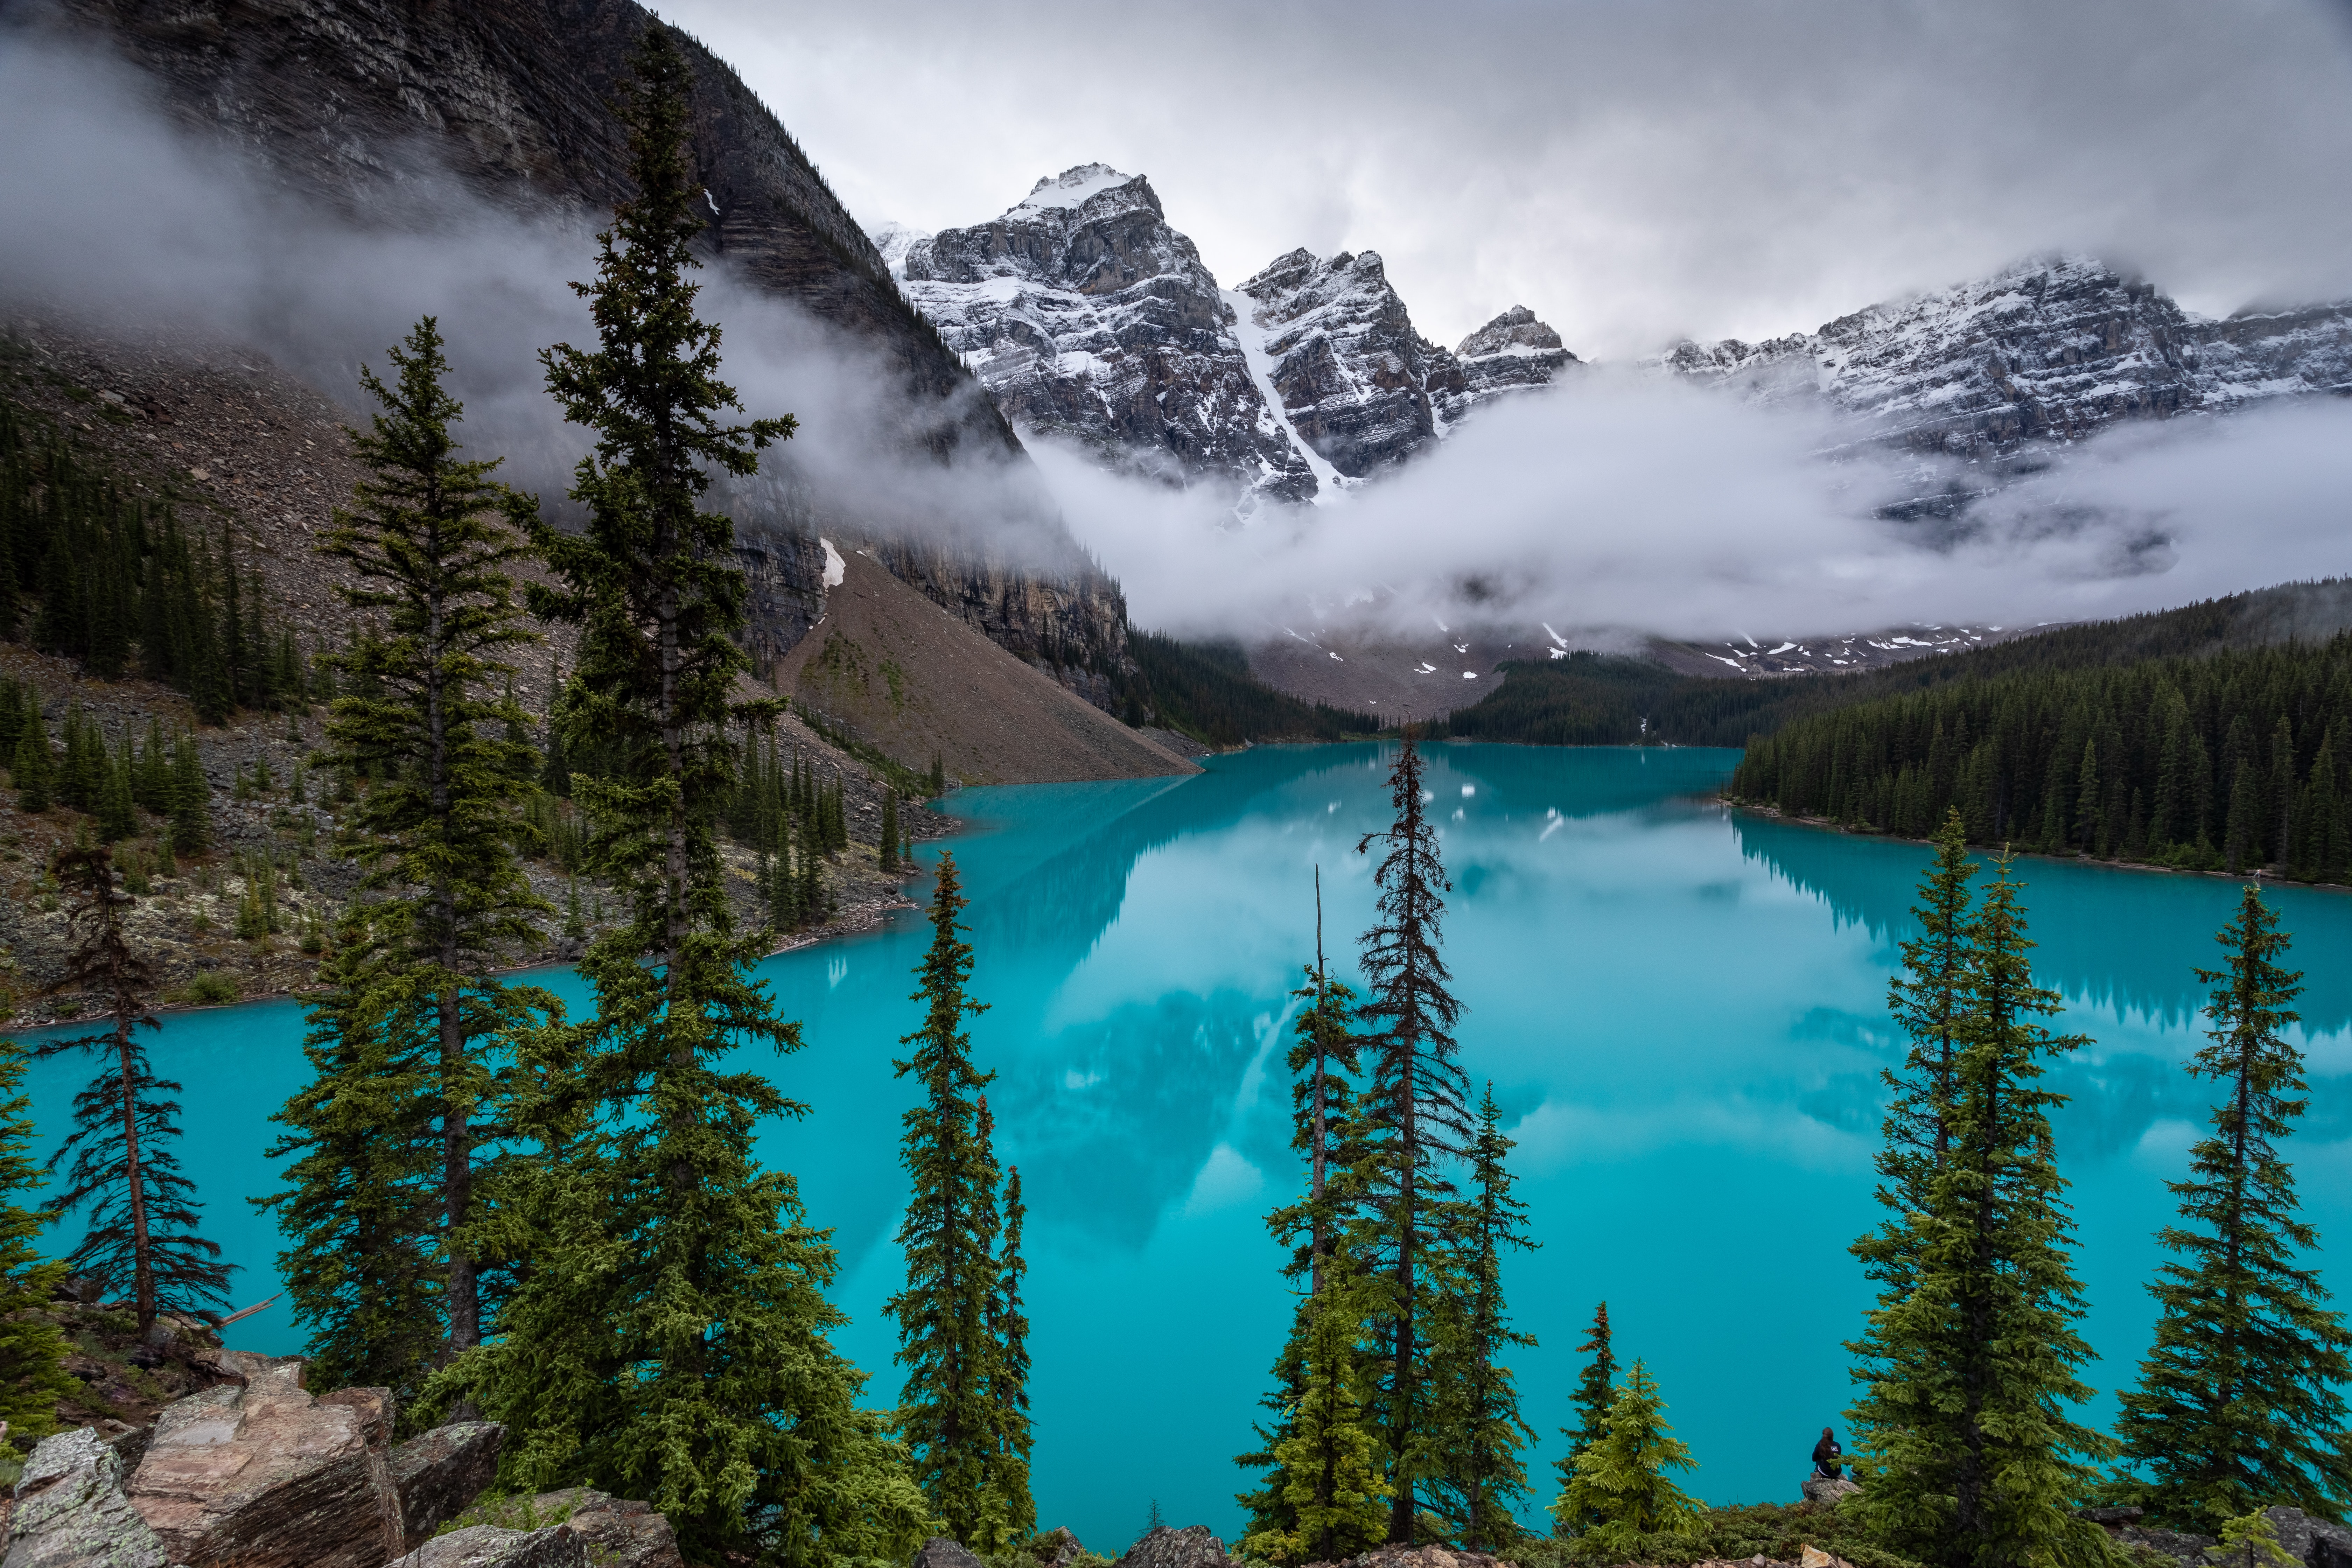 135144 download wallpaper Landscape, Nature, Trees, Mountains, Clouds, Lake screensavers and pictures for free